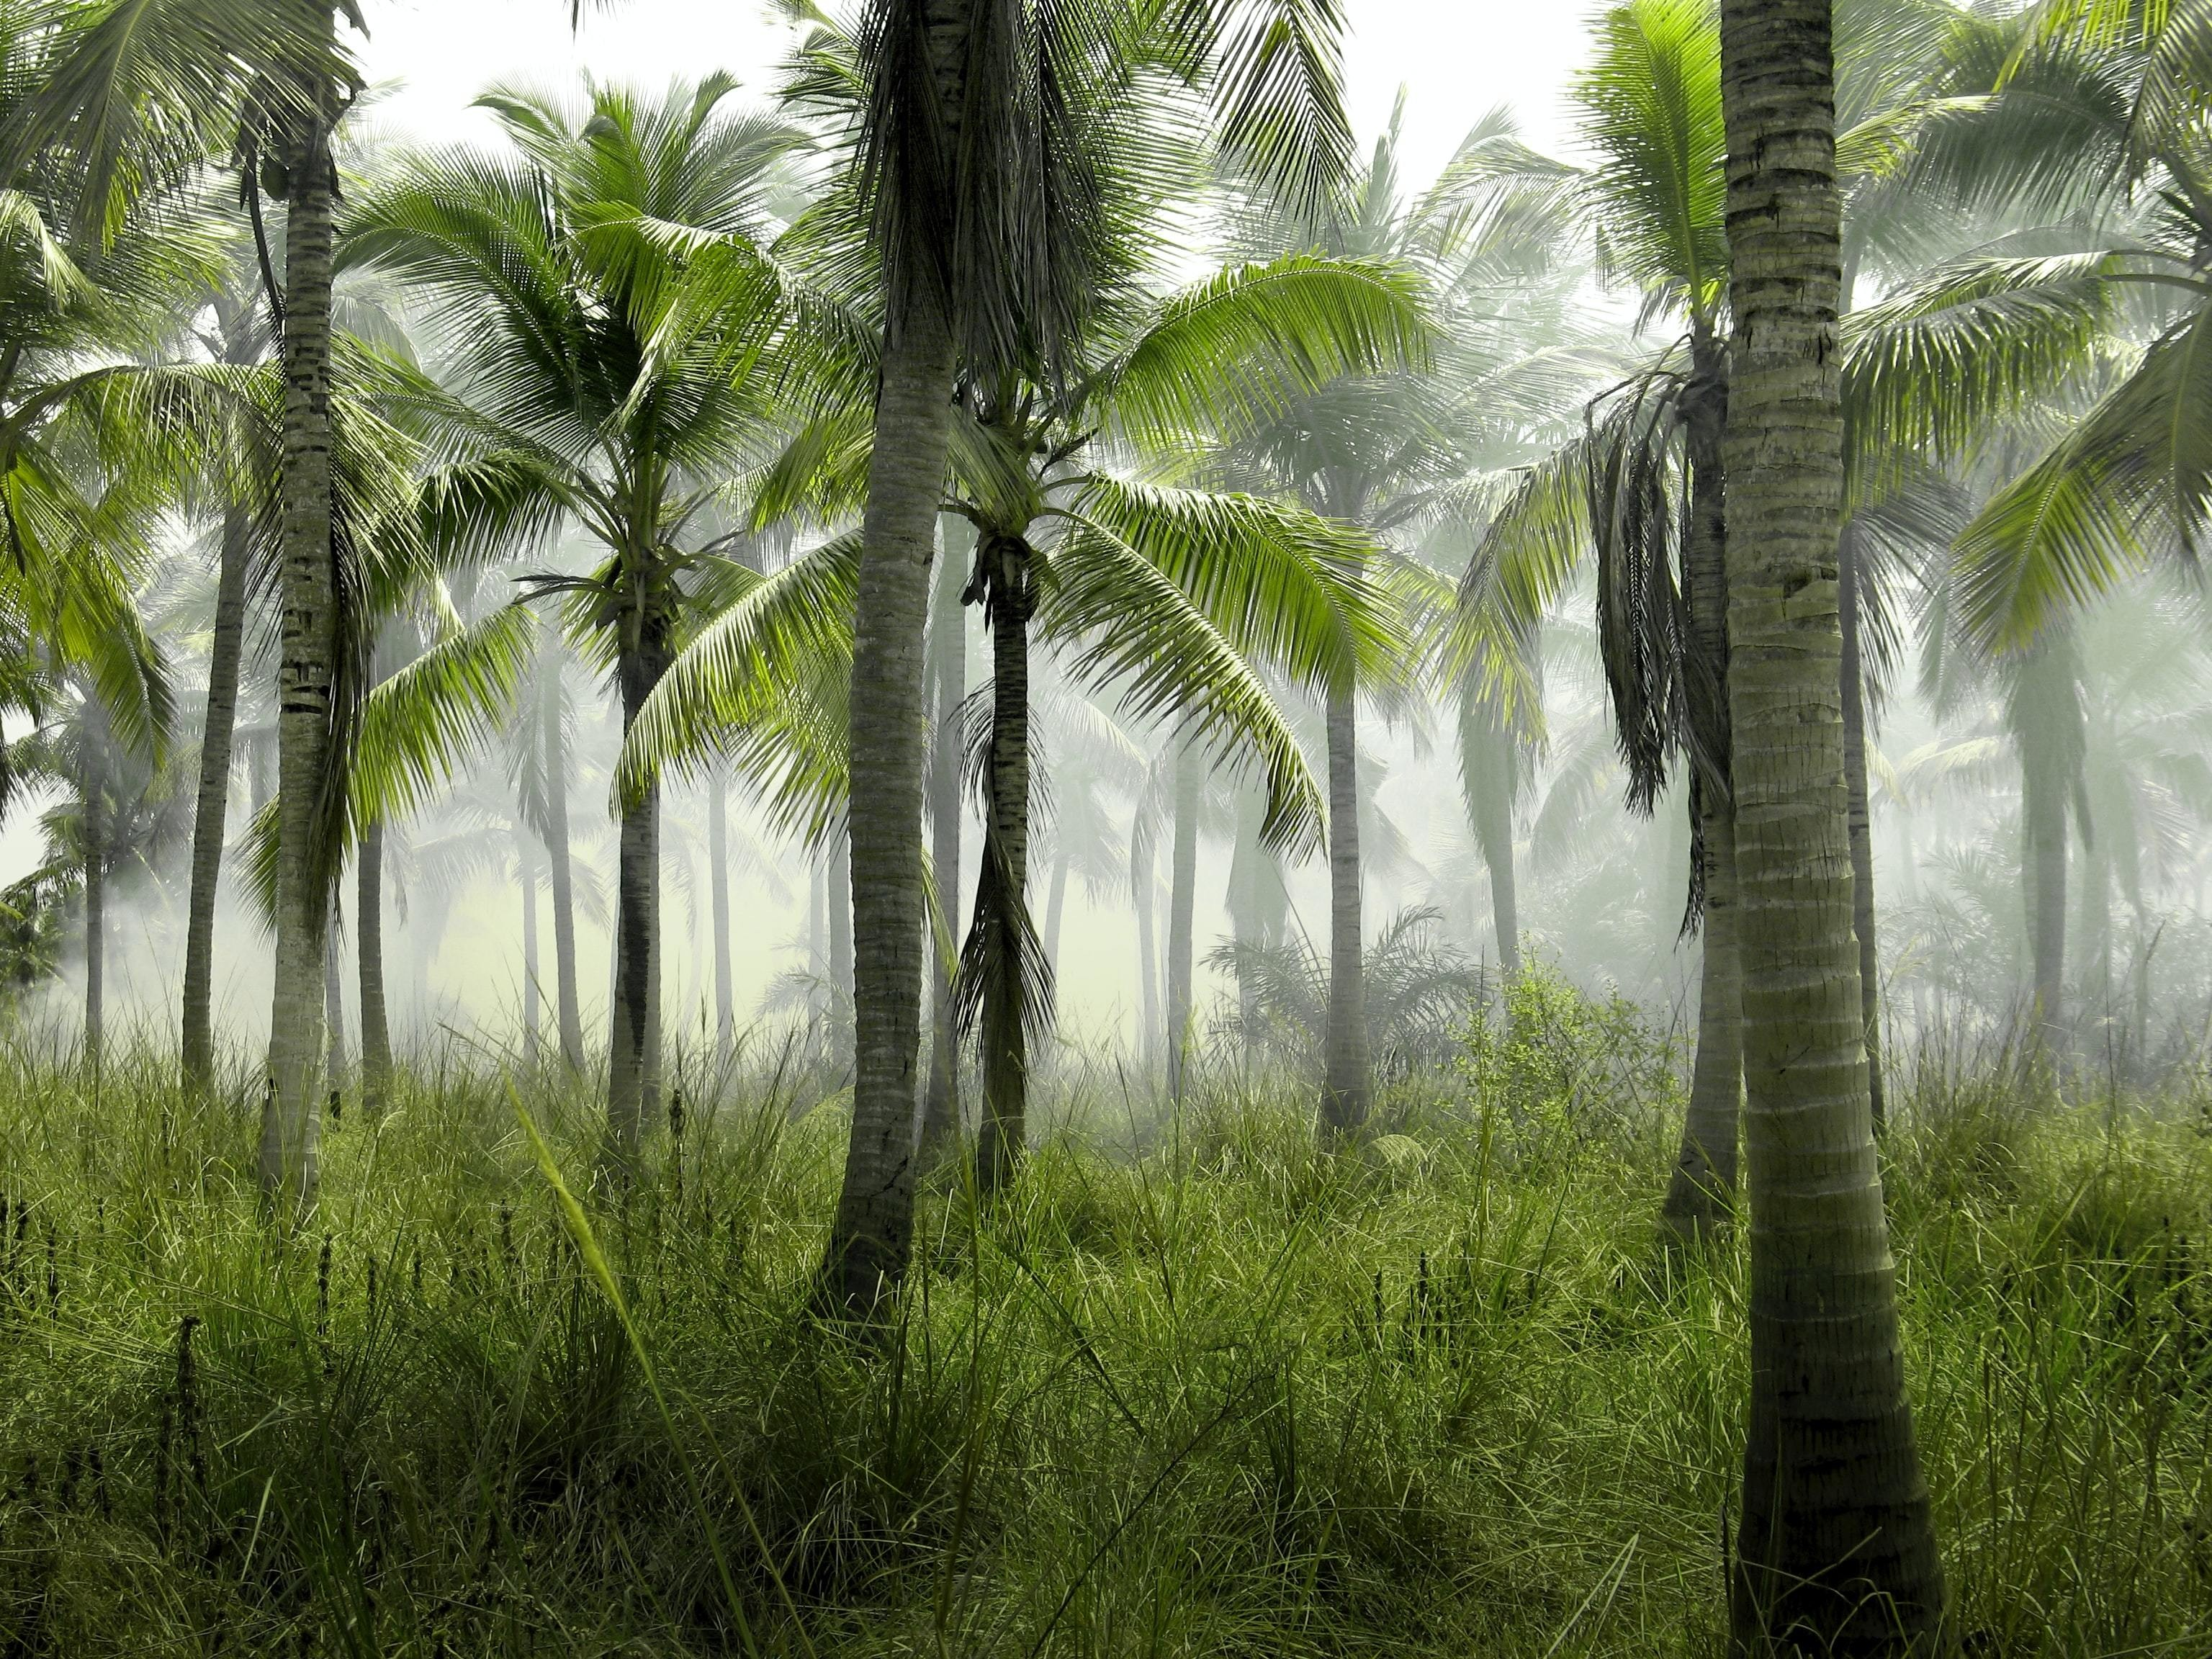 a picture of some palm trees